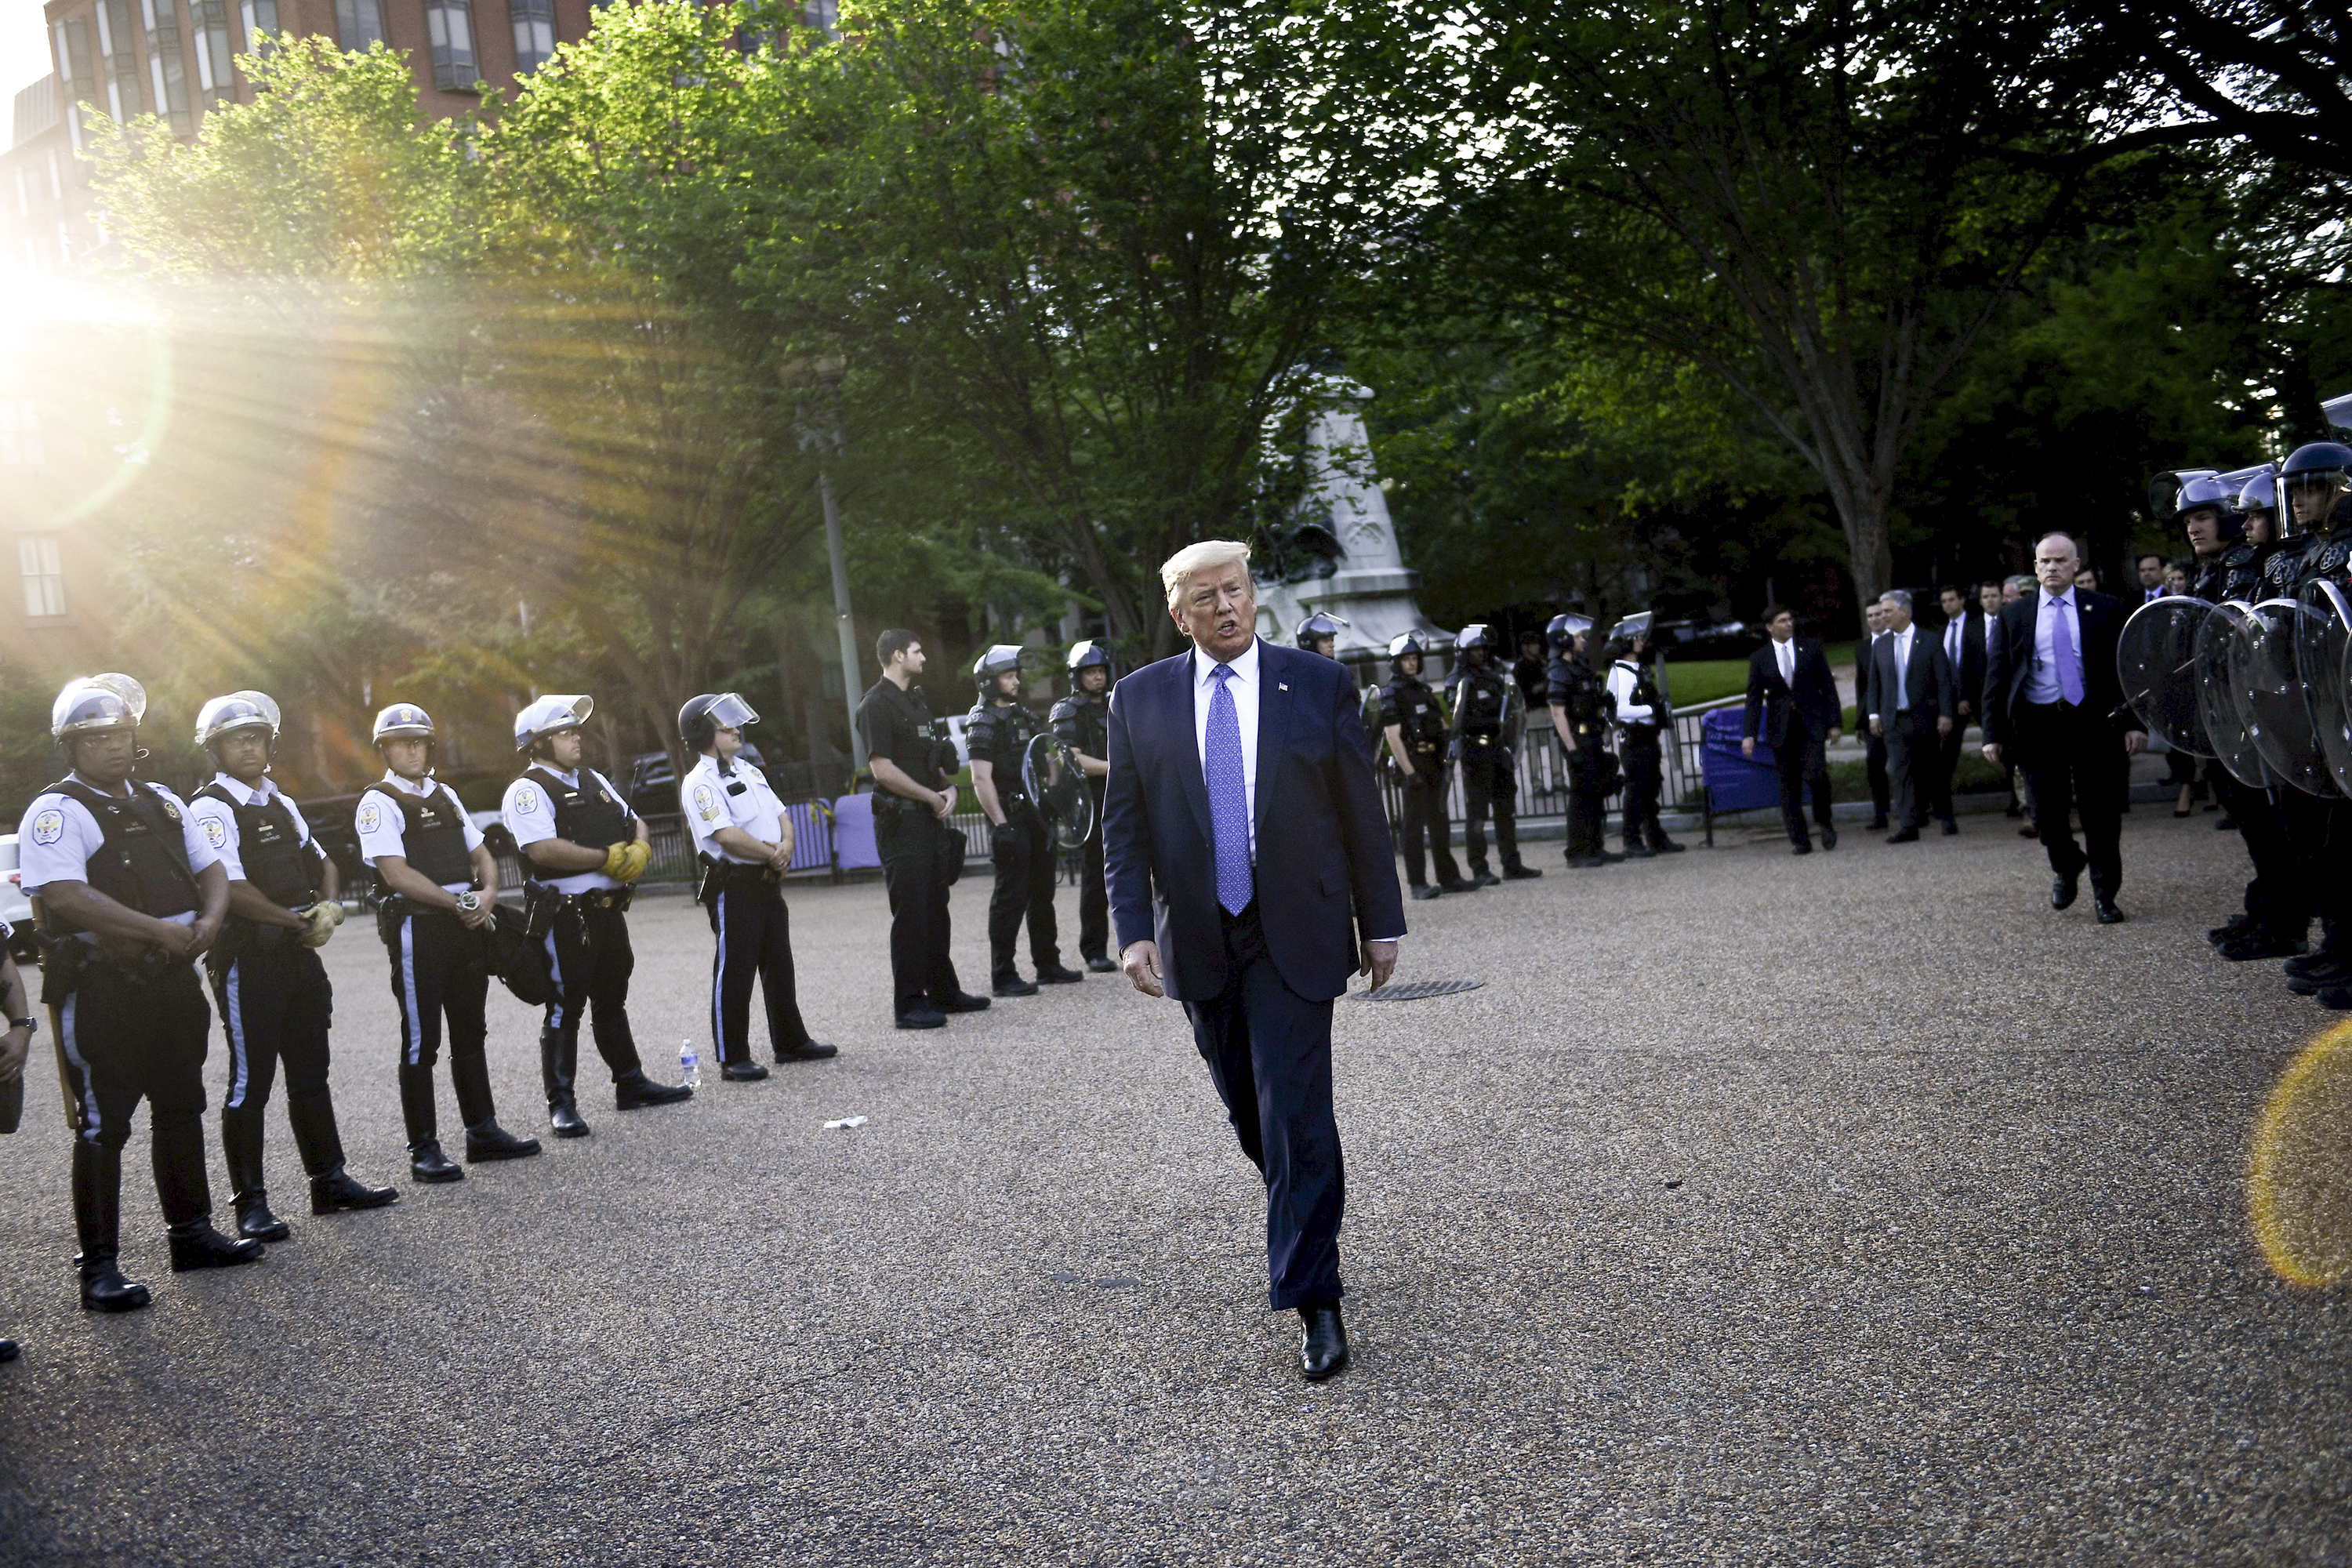 President Donald Trump, in a navy suit and blue tie, walks between two columns of police officers clad in riot gear. The officers are in tight ranks, creating a path of protection for the president.